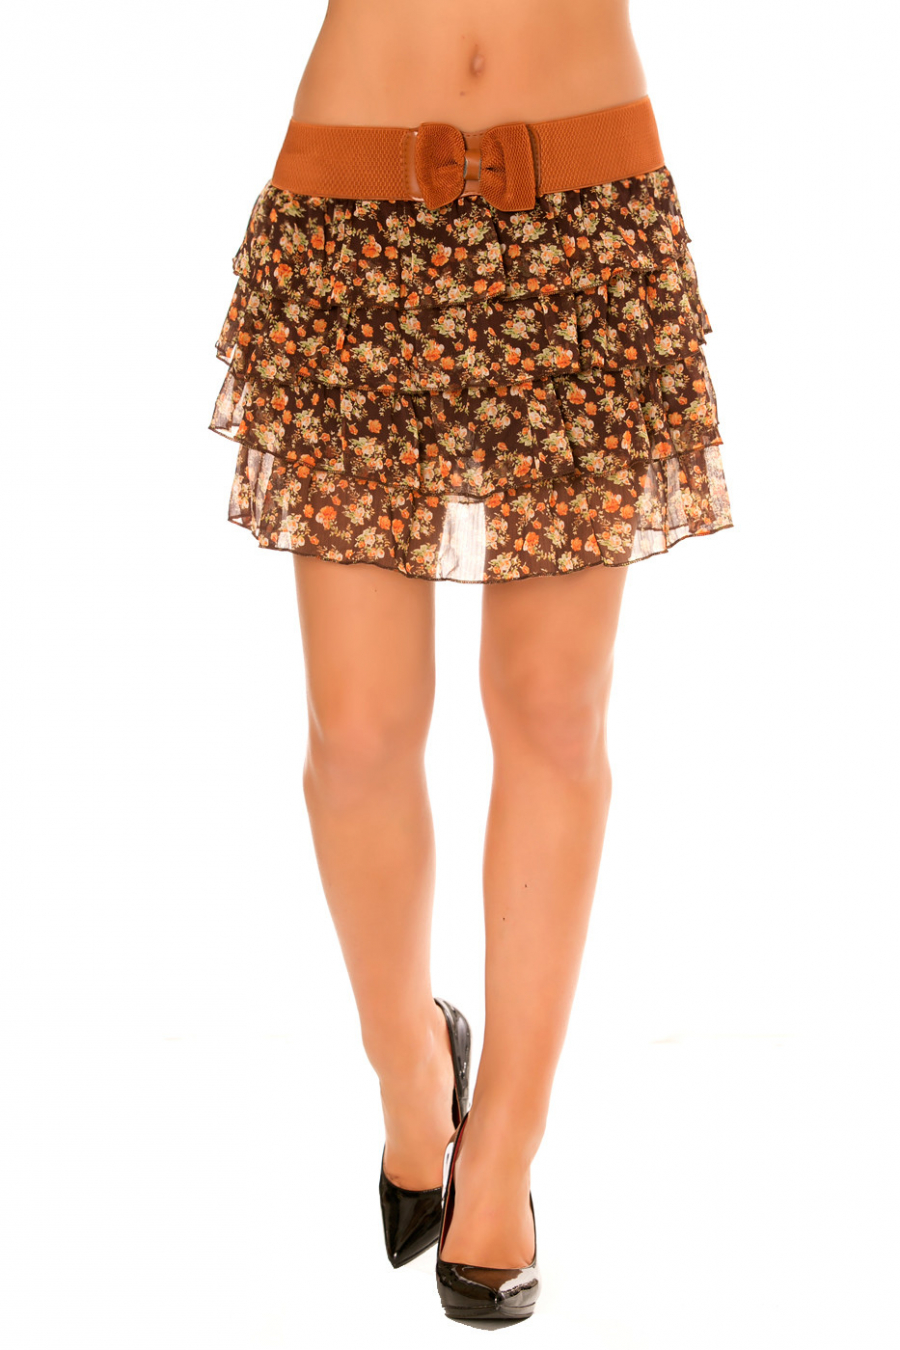 Skirt with flounce, floral prints Brown with a wide belt. 920